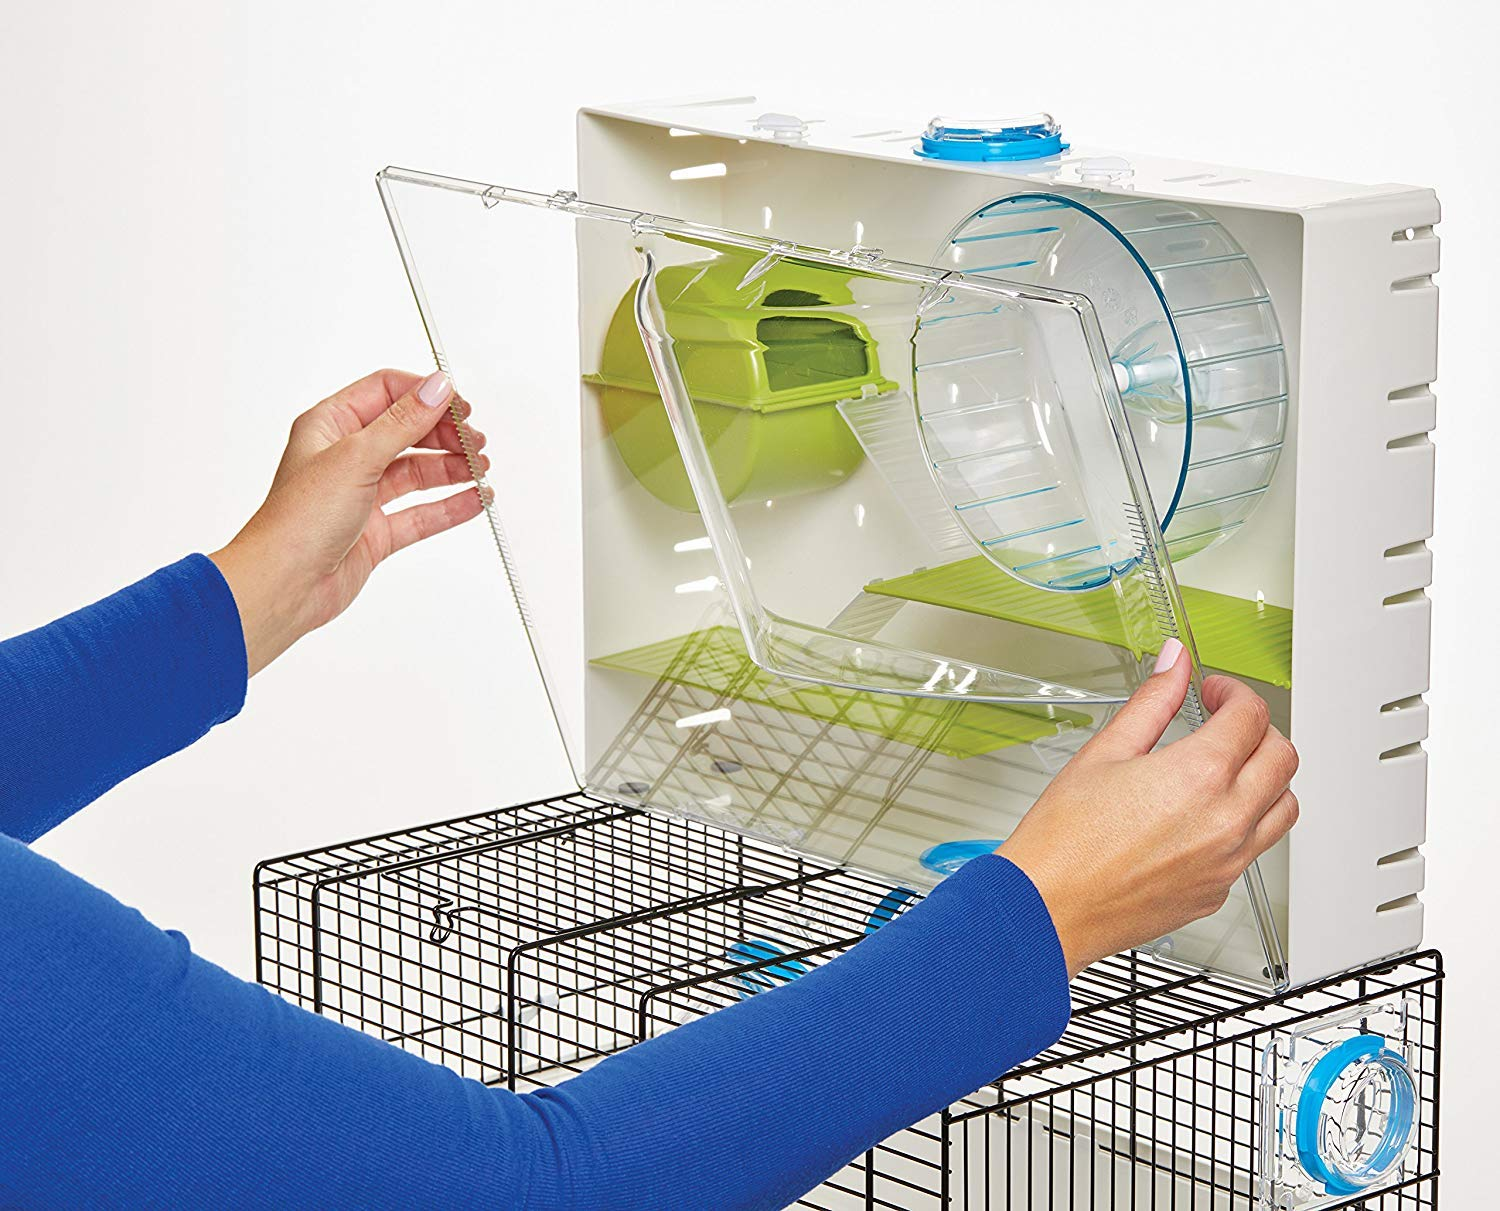 MidWest Homes for Pets Hamster Cage | Awesome Arcade Hamster Home | 18.11'' x 11.61'' x 21.26'' by MidWest Homes for Pets (Image #6)